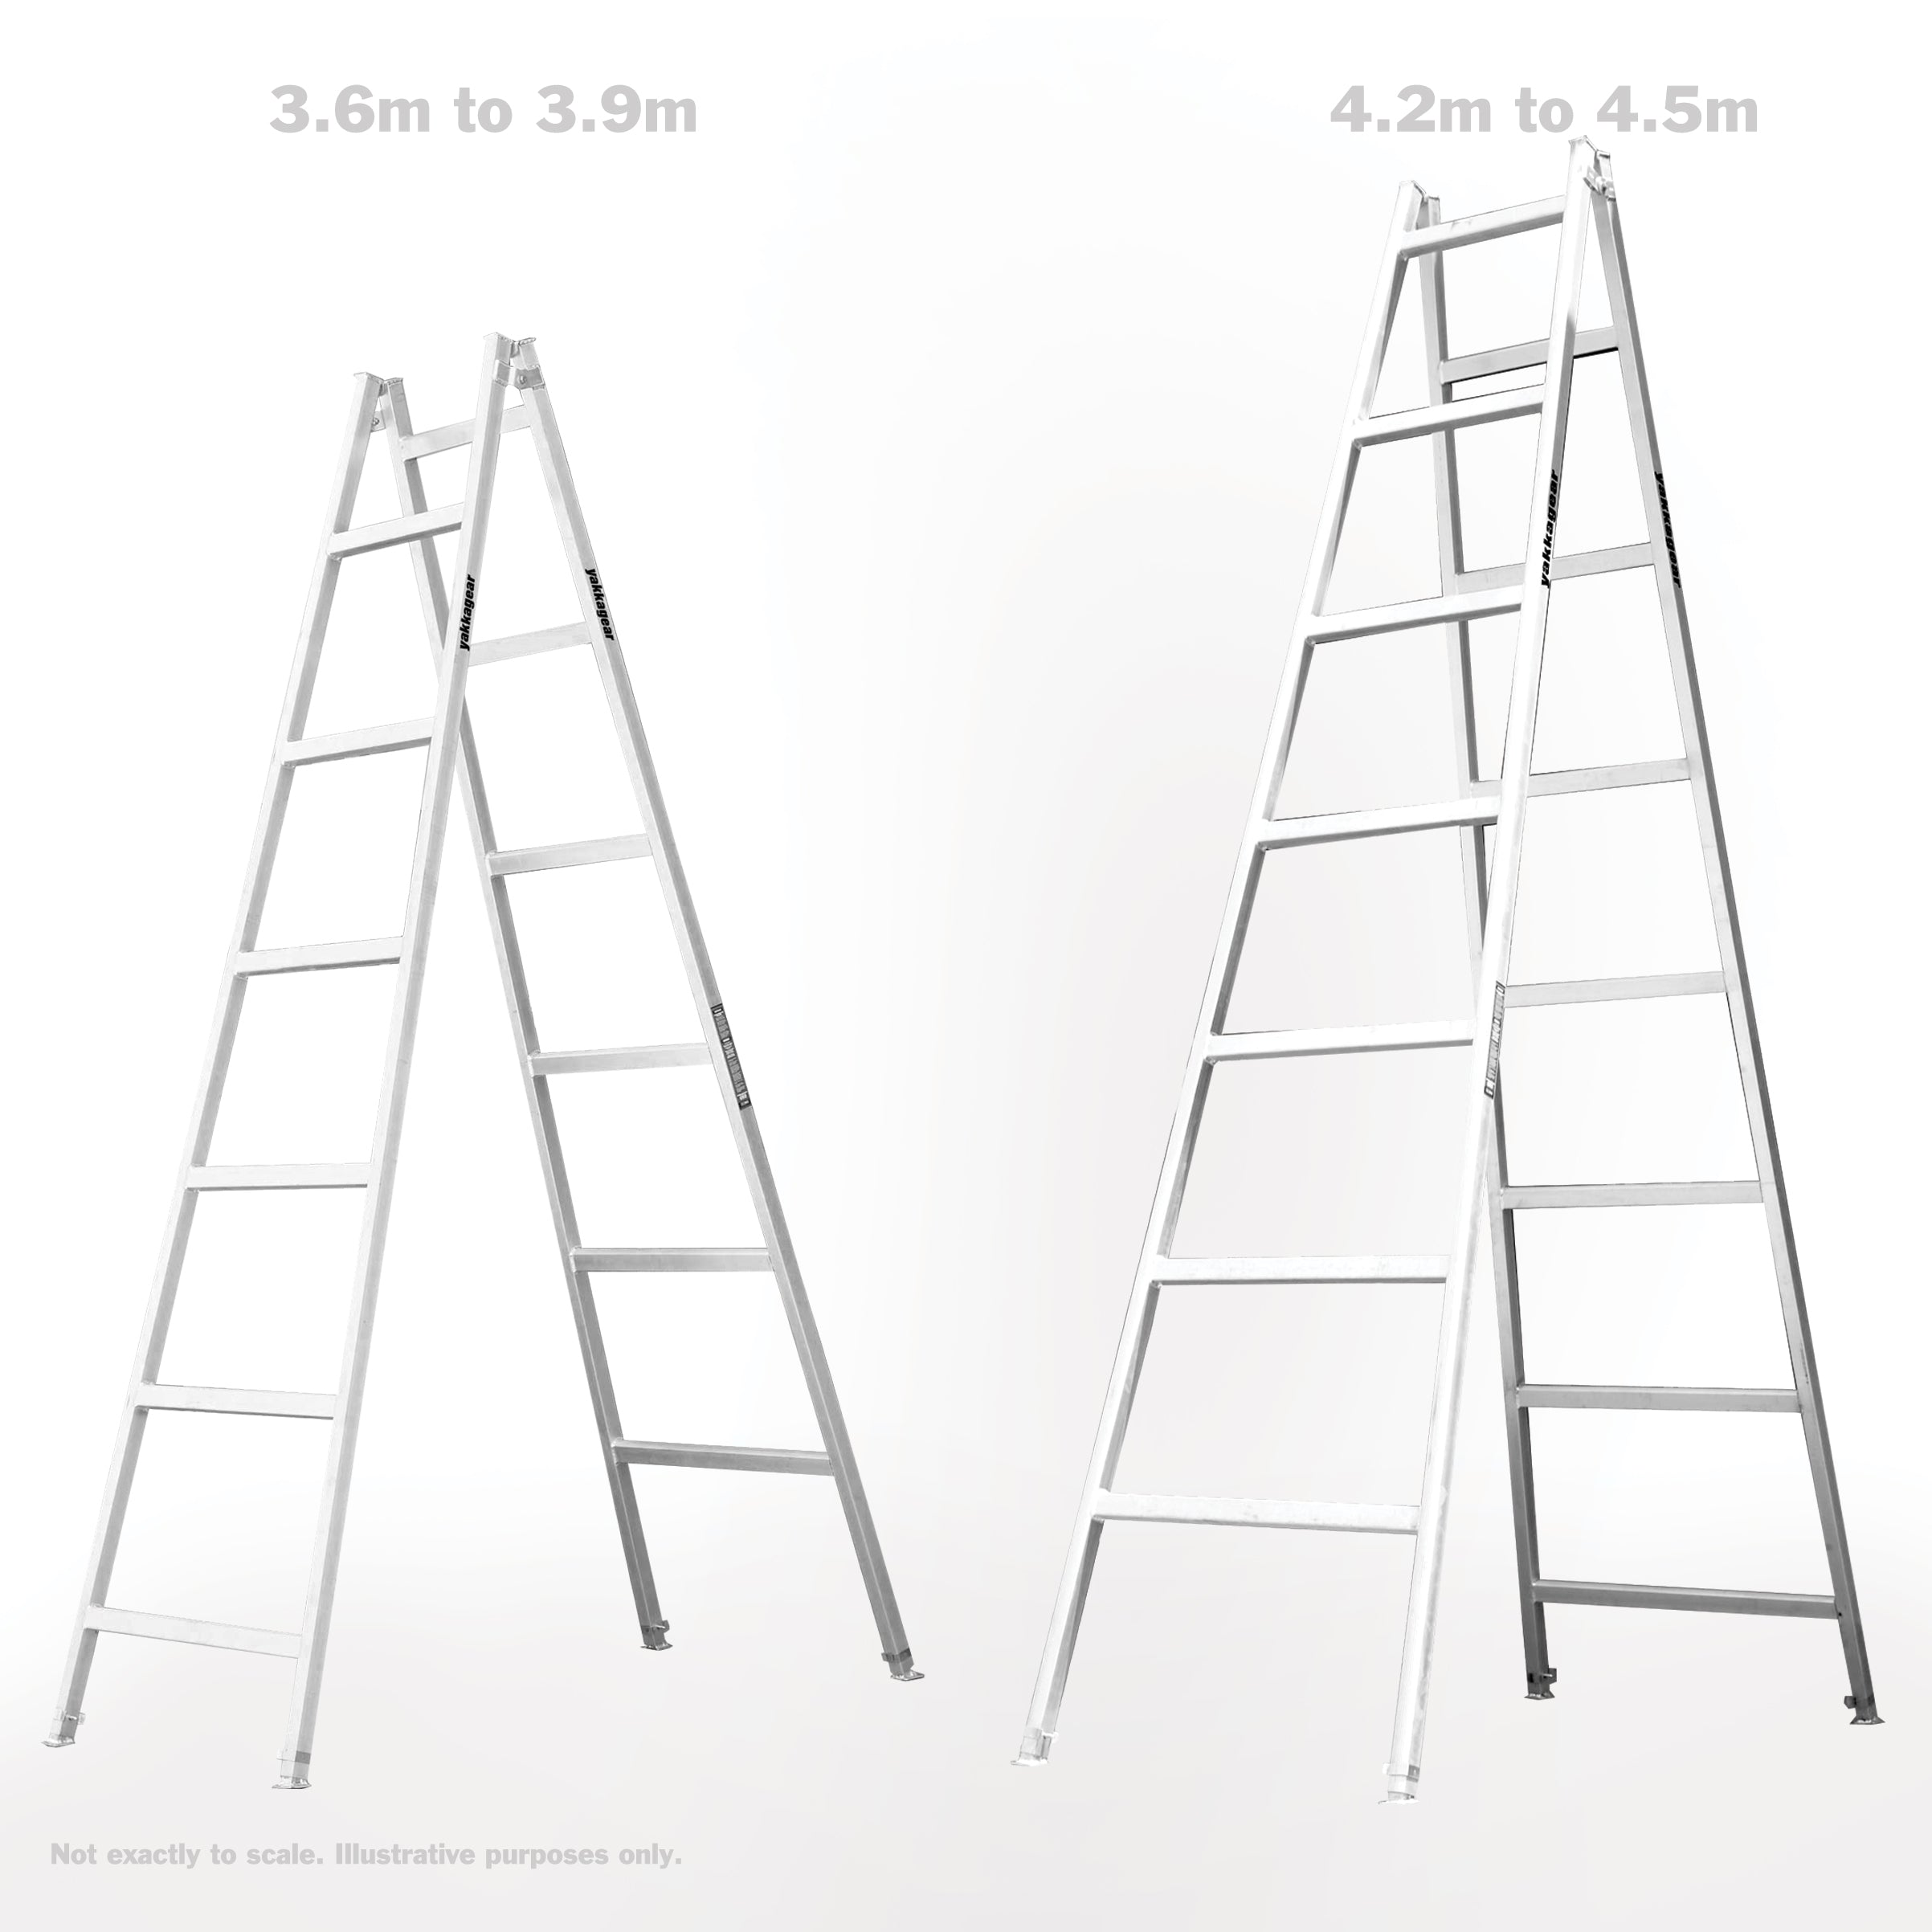 yakka gear 3.6m - 3.9m adjustable trestles comparison to 4.2m to 4.5m